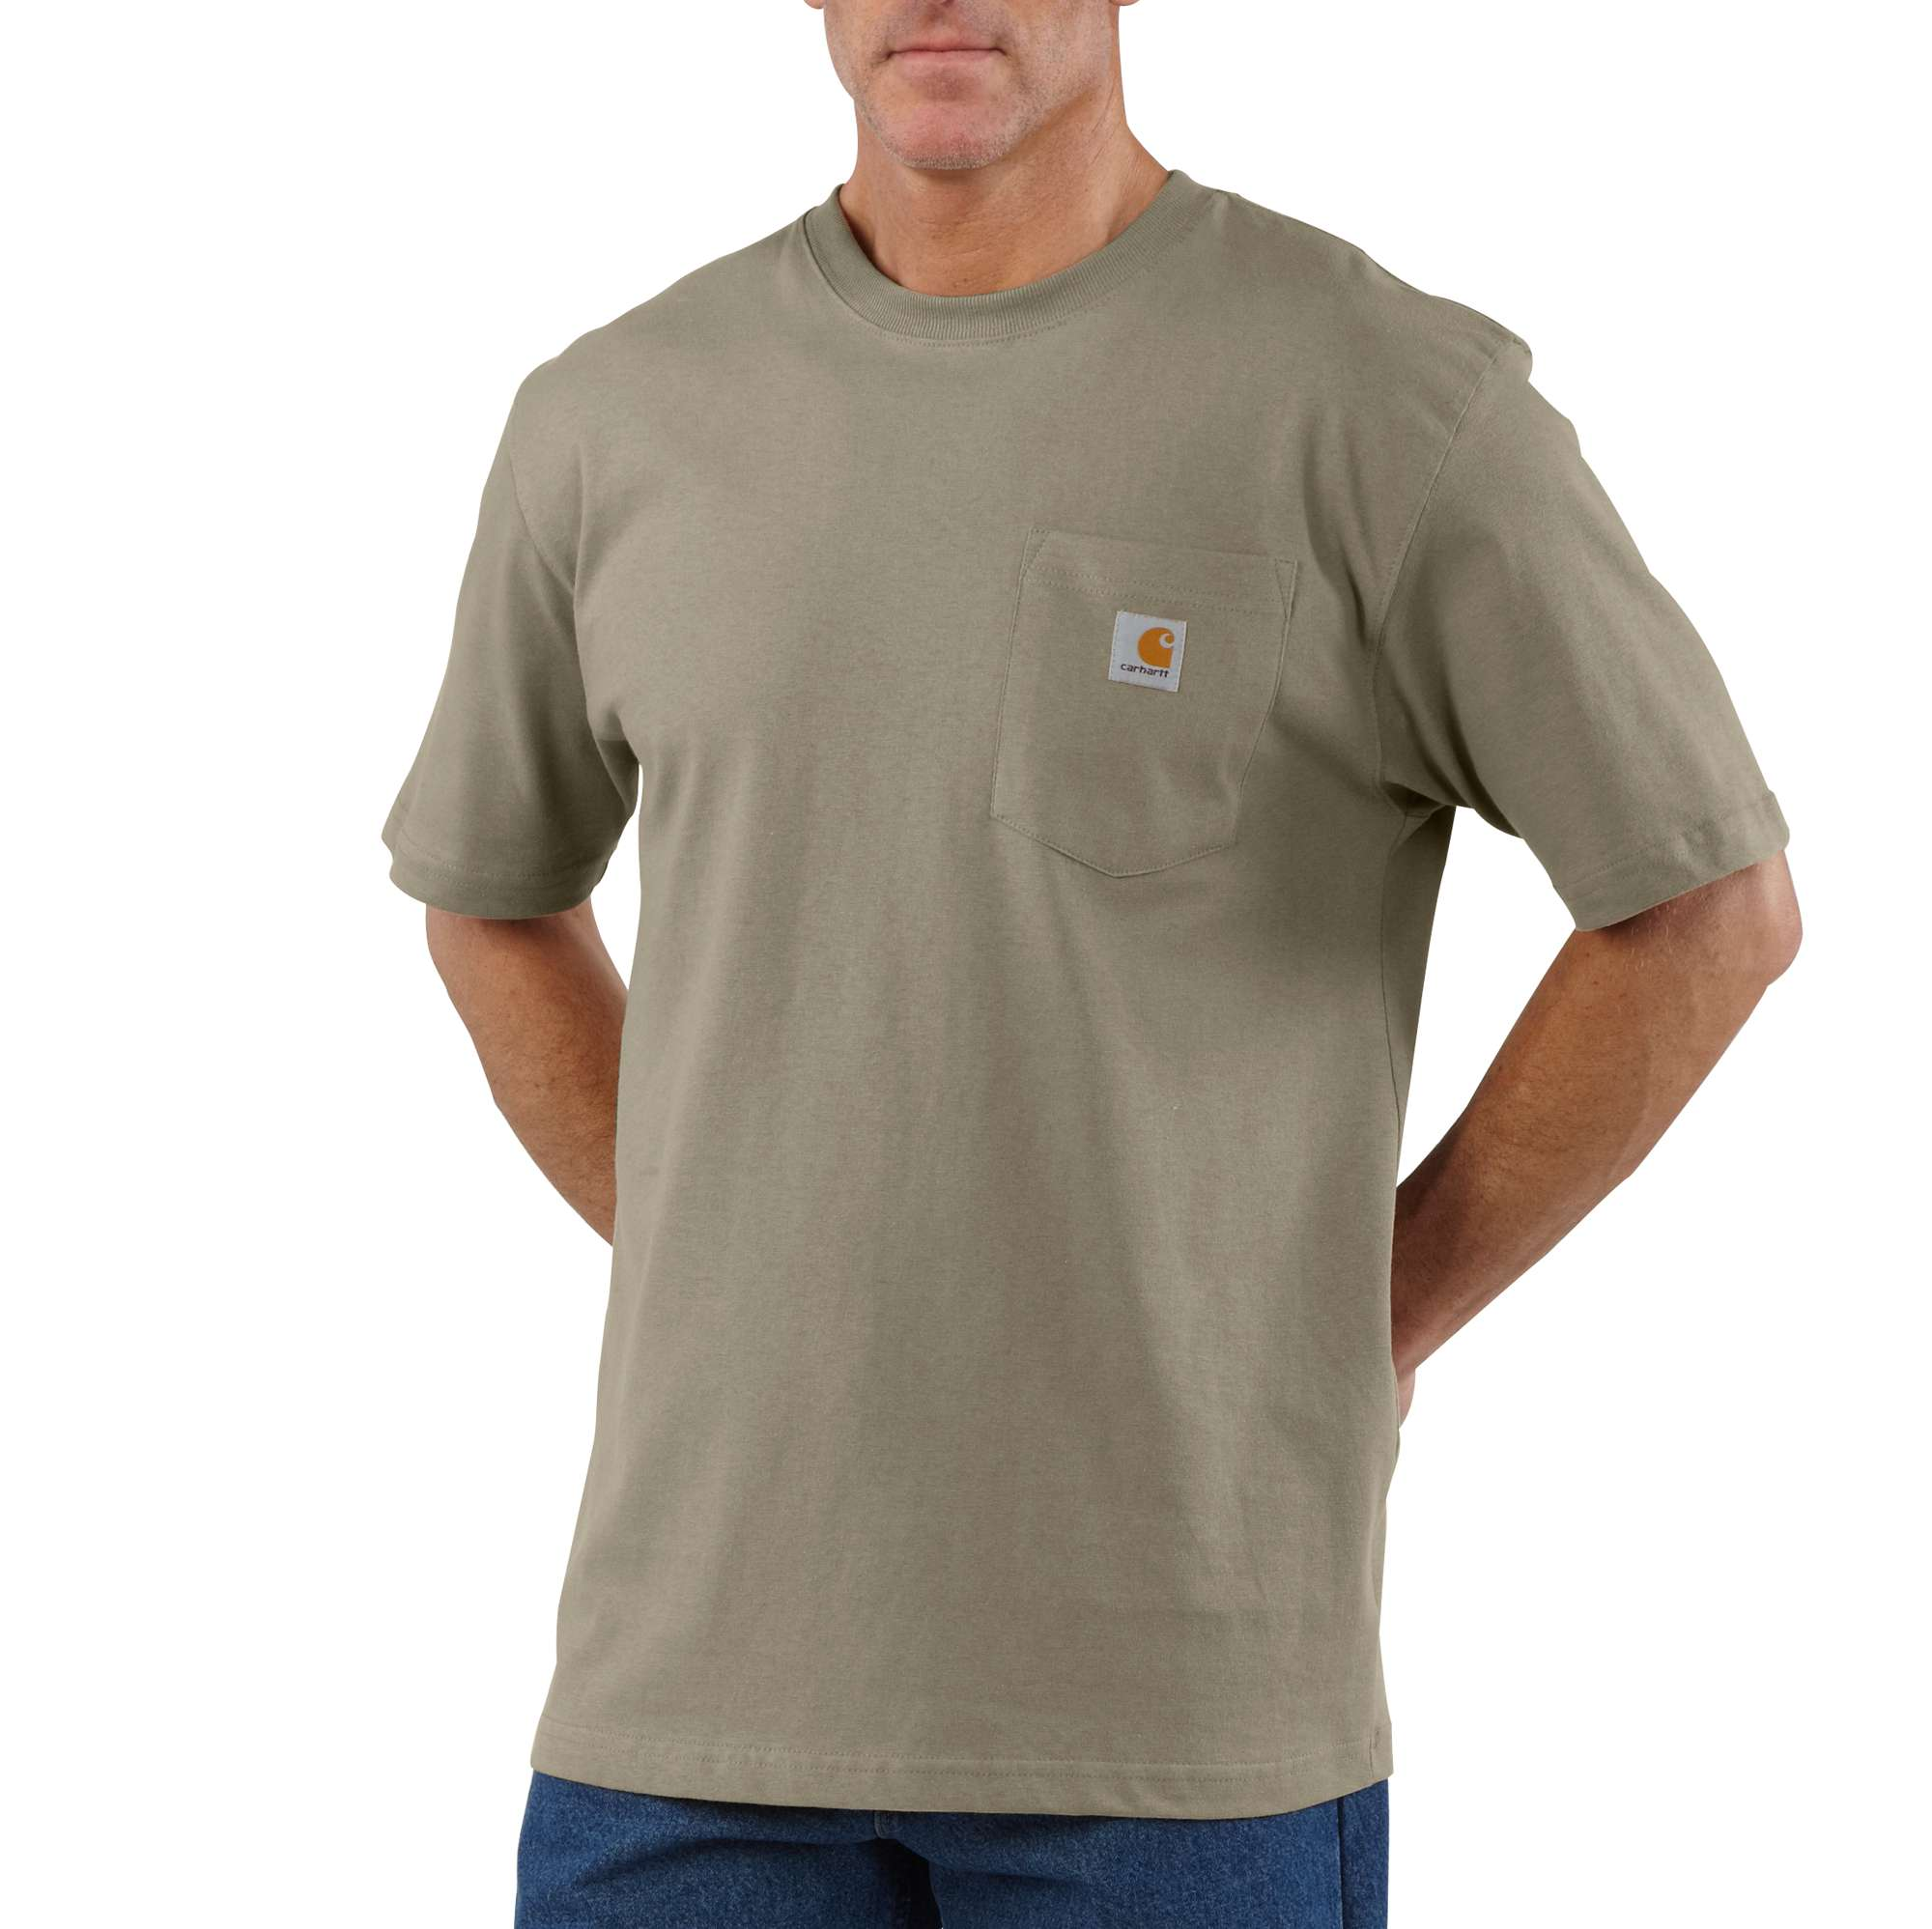 Men's Big & Tall Workwear Pocket T-Shirt, Lt Brown,Taupe, swatch